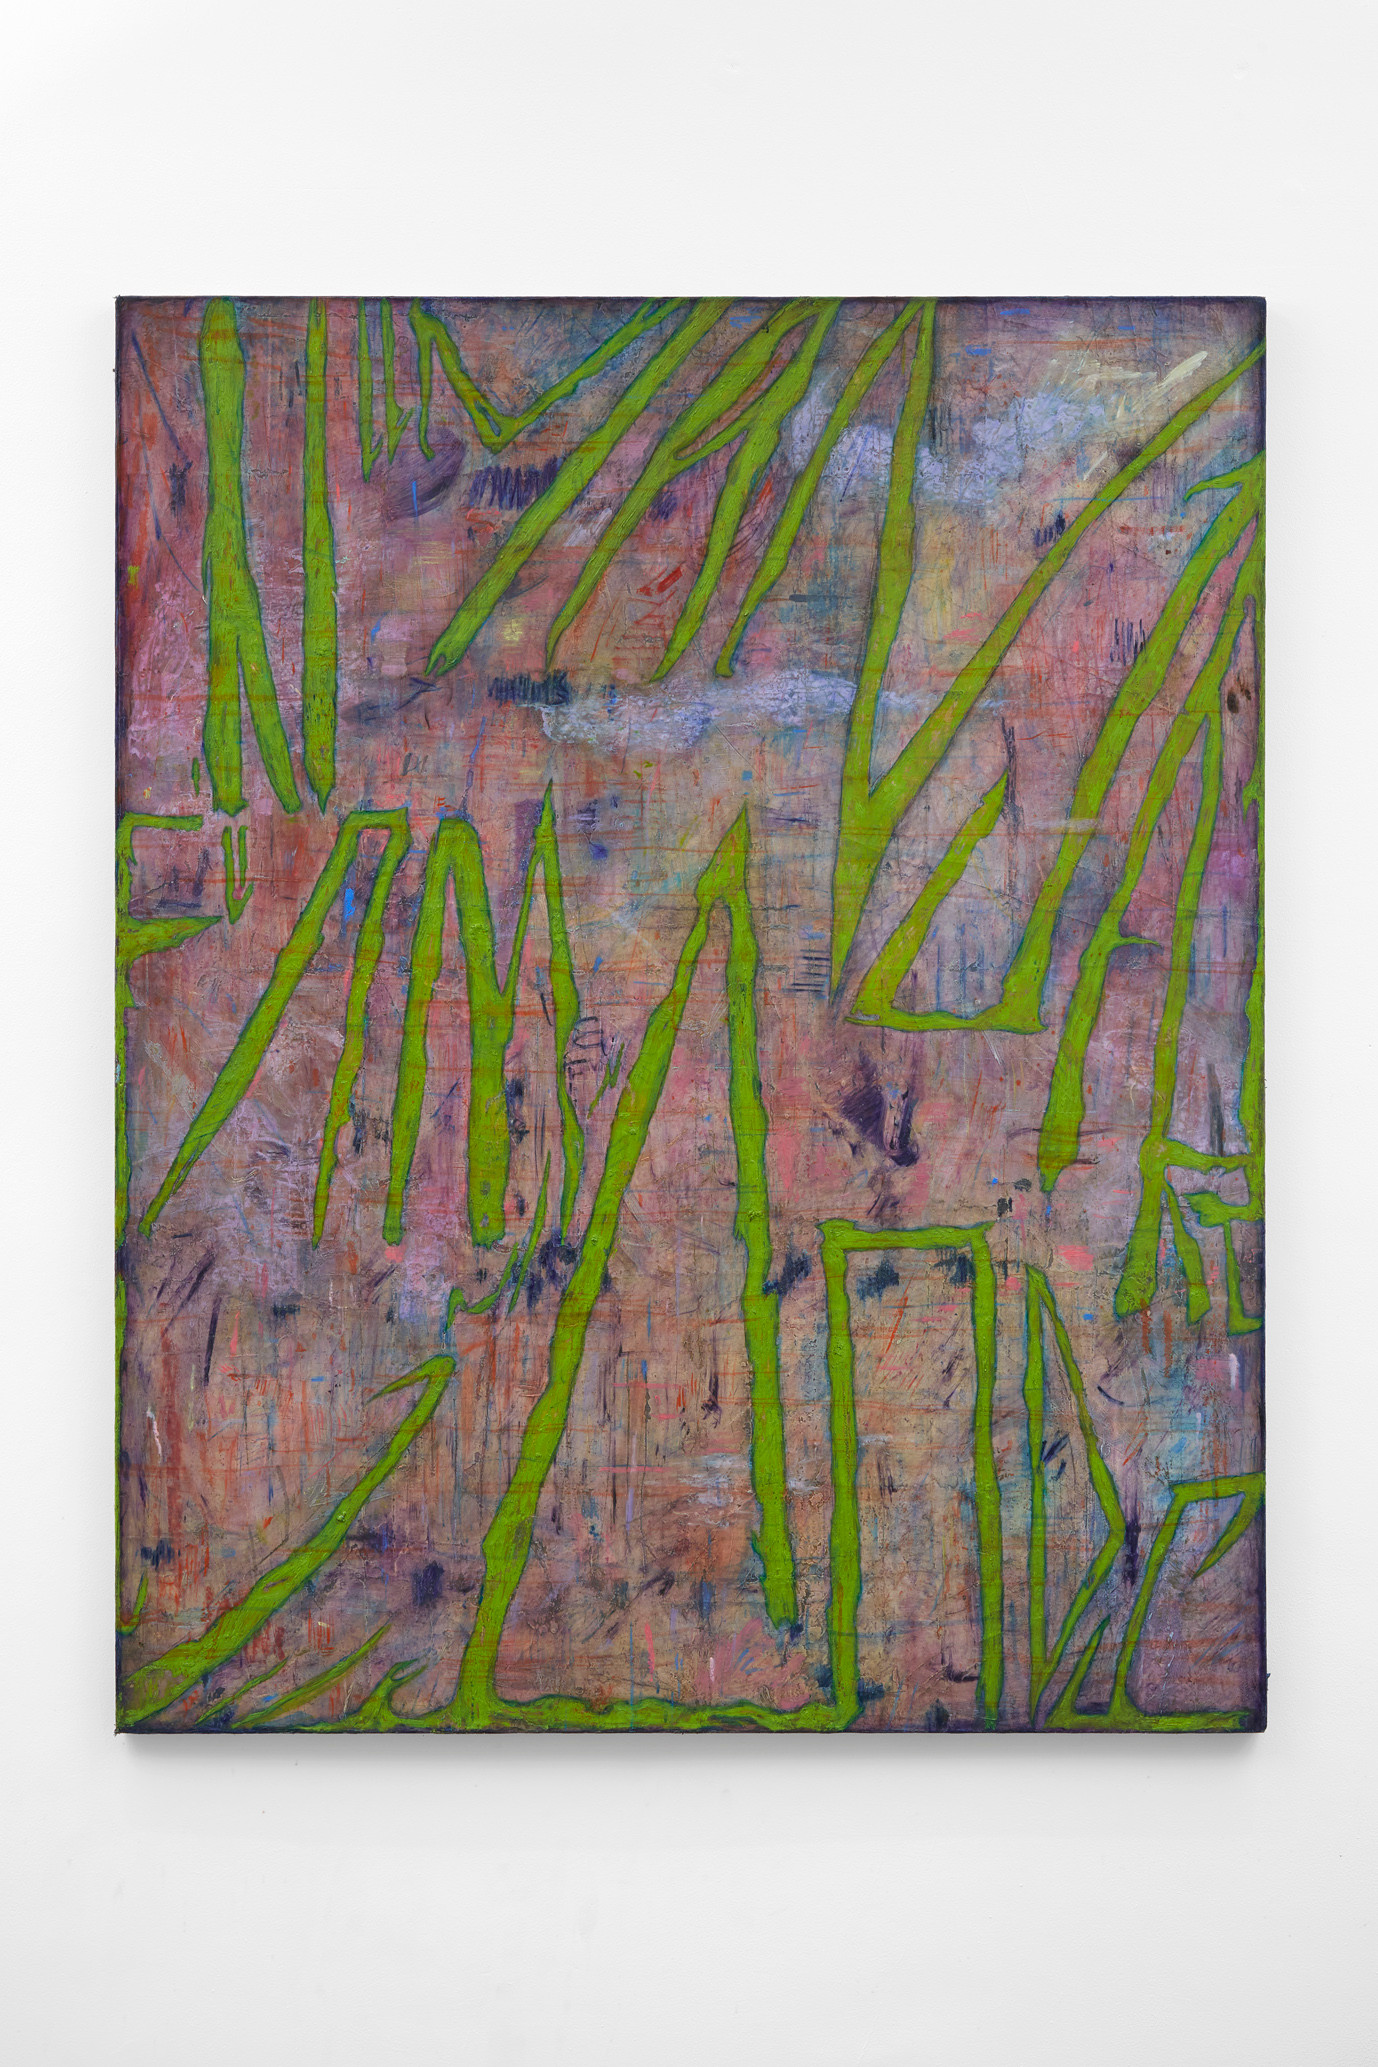 ~ the bony labyrinth. 2015-17. oil paint, oil pastel, and graphite on linen. 150.5 x 120.5 cm